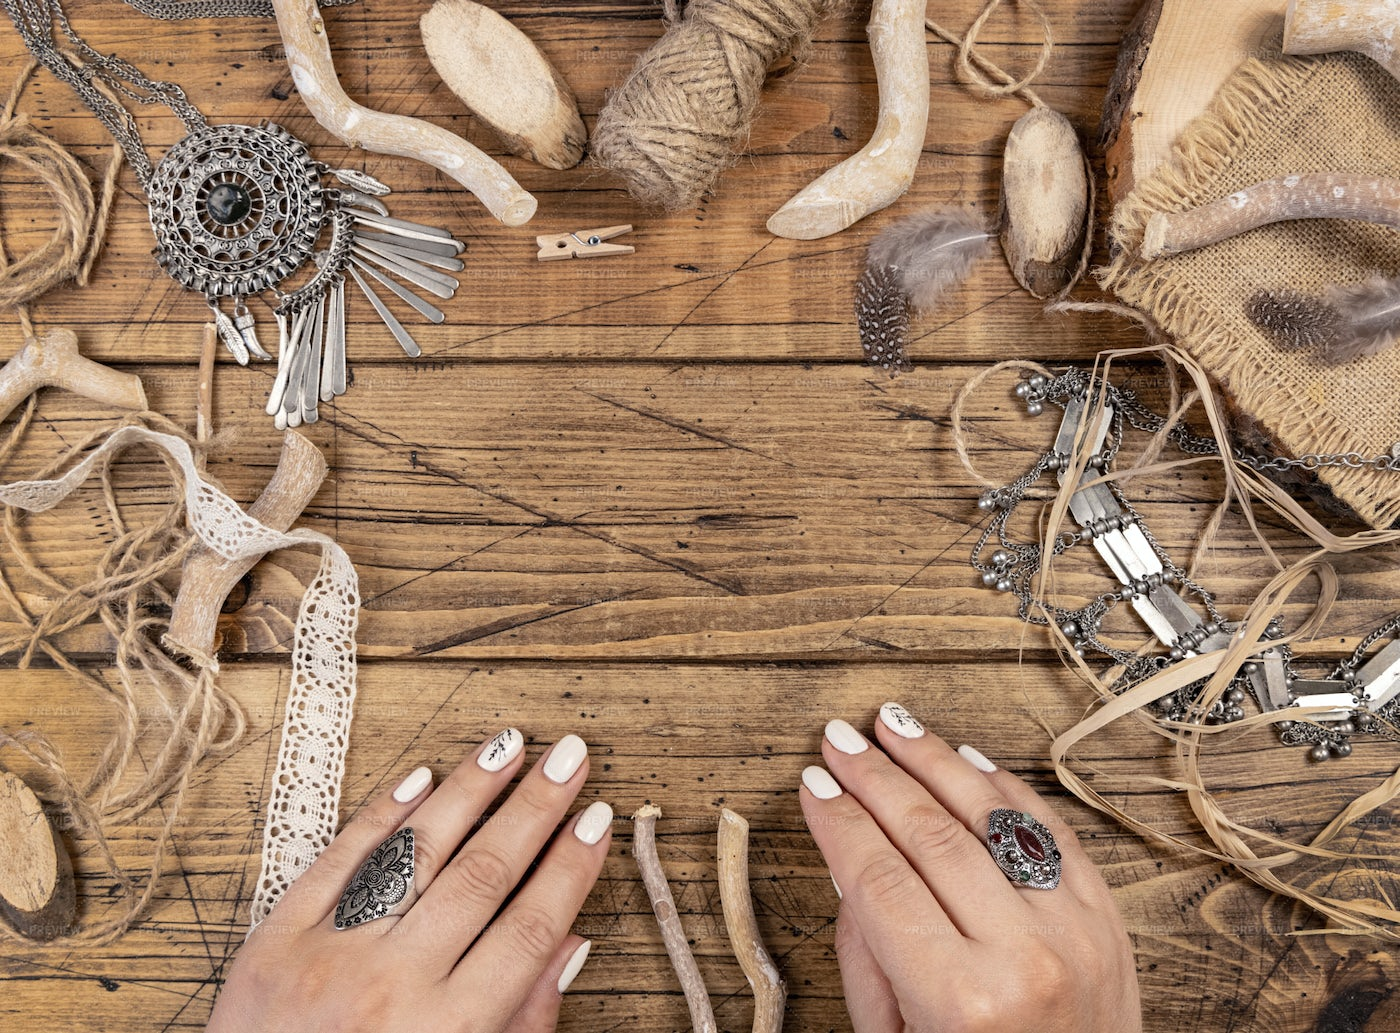 Woman's Hands And Bohemian Decorations: Stock Photos